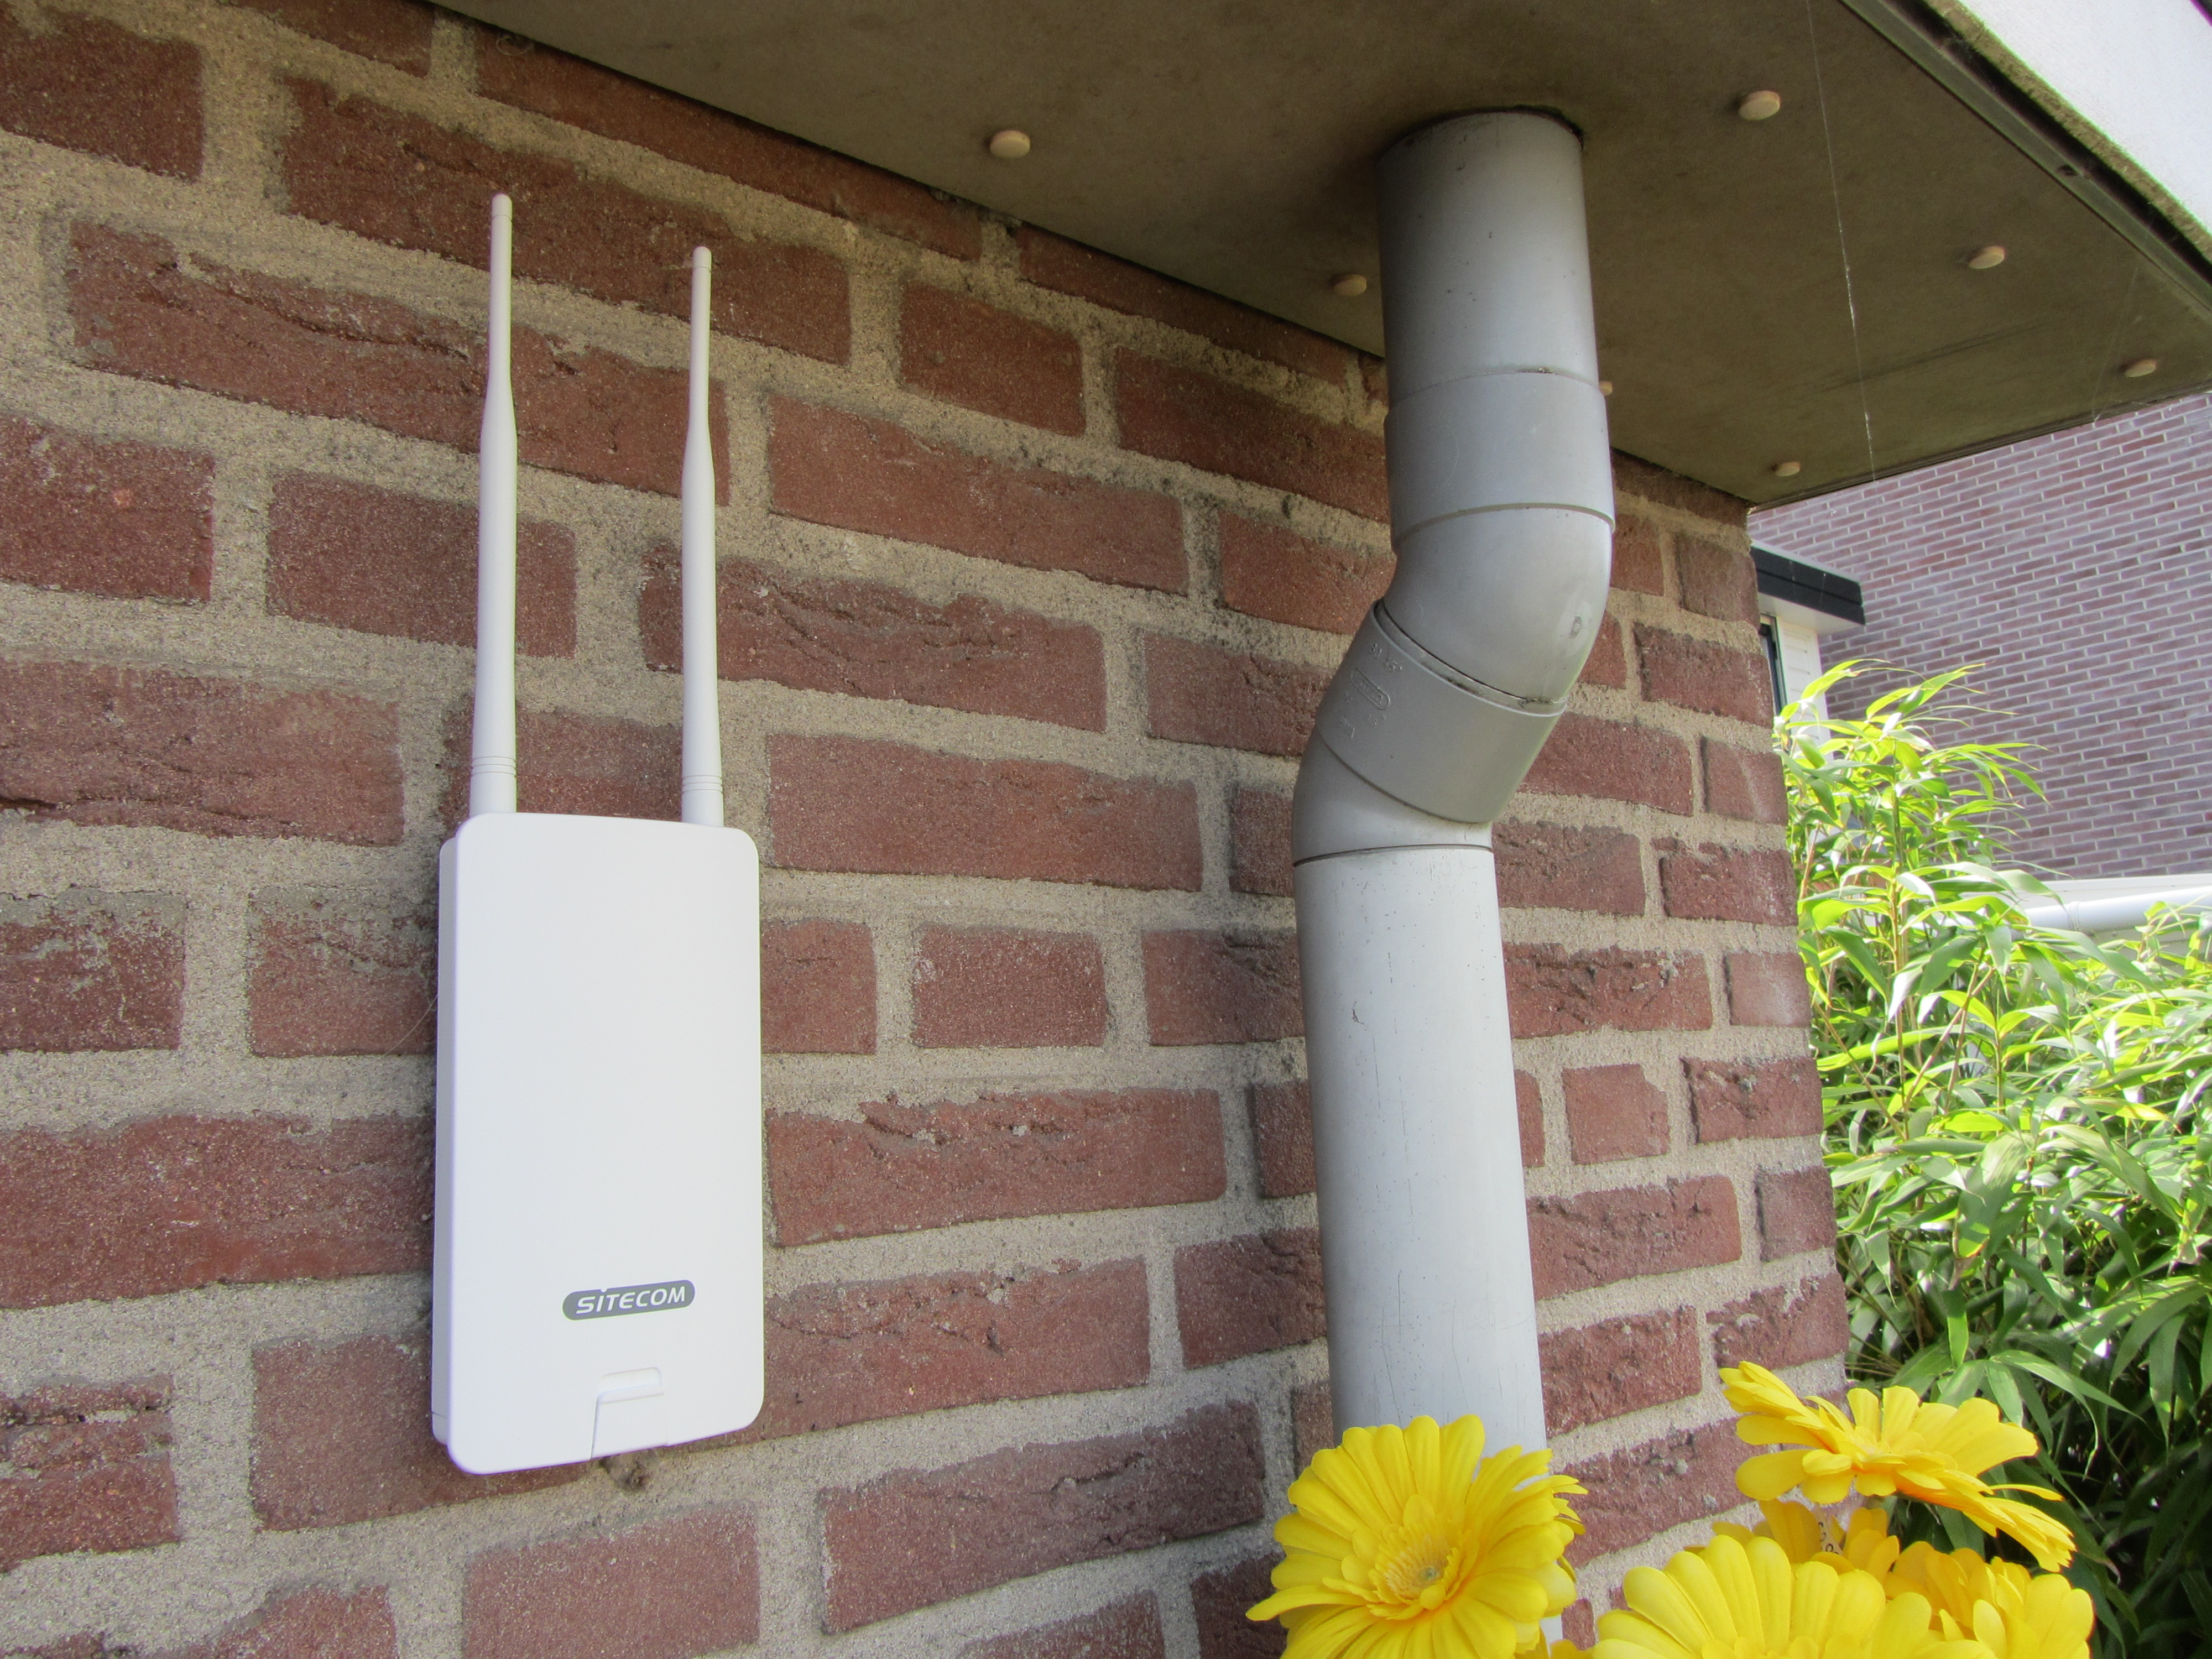 Sitecom n300 wi fi outdoor range extender   pclinde   userreviews ...